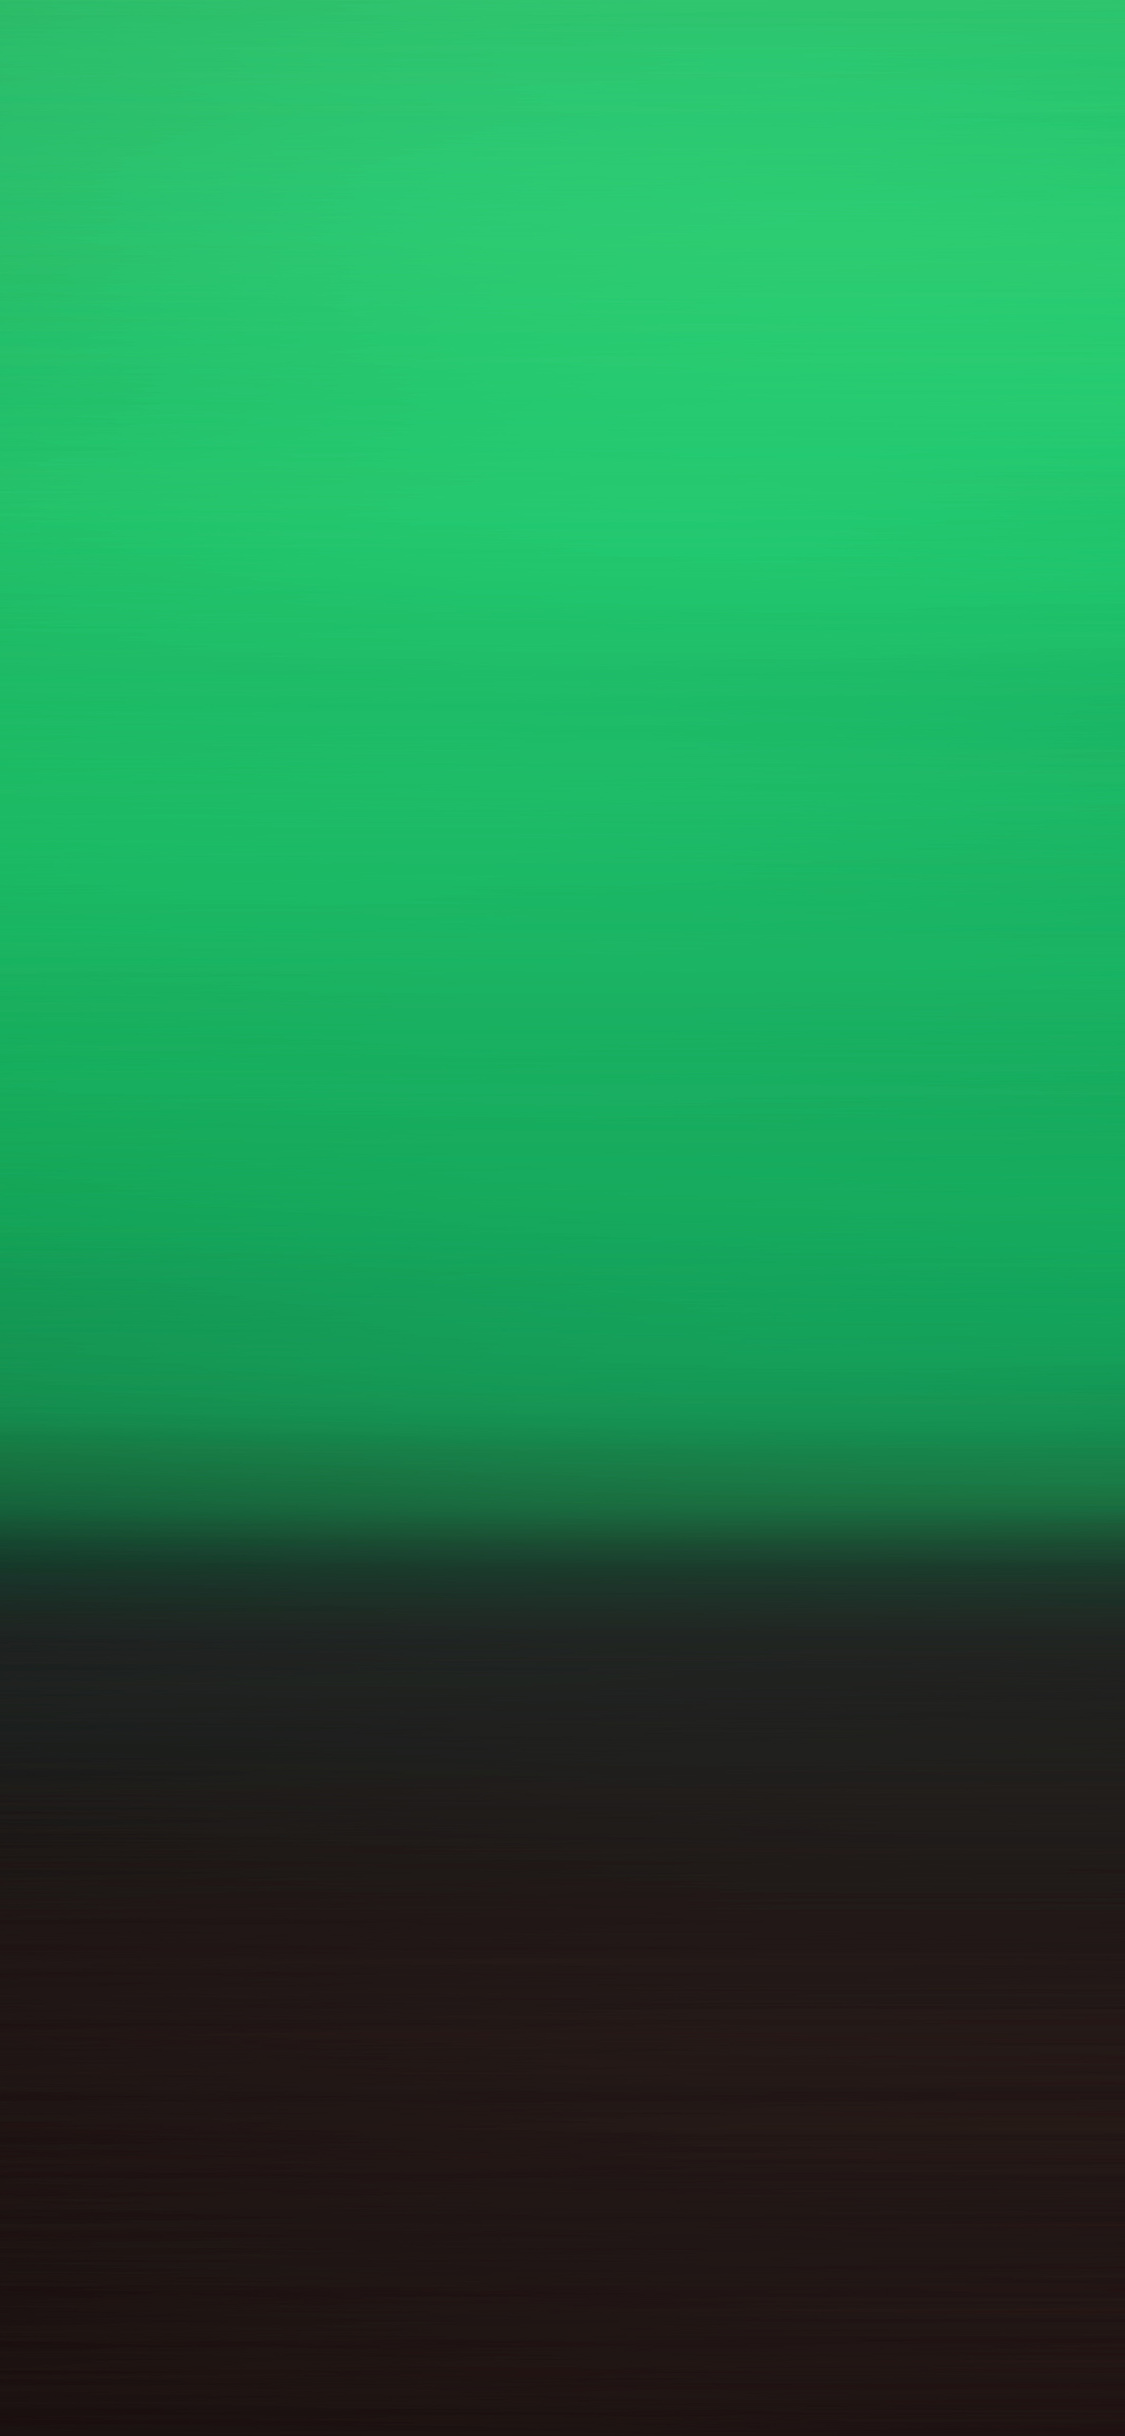 iPhoneXpapers.com-Apple-iPhone-wallpaper-sg33-motion-green-dark-gradation-blur